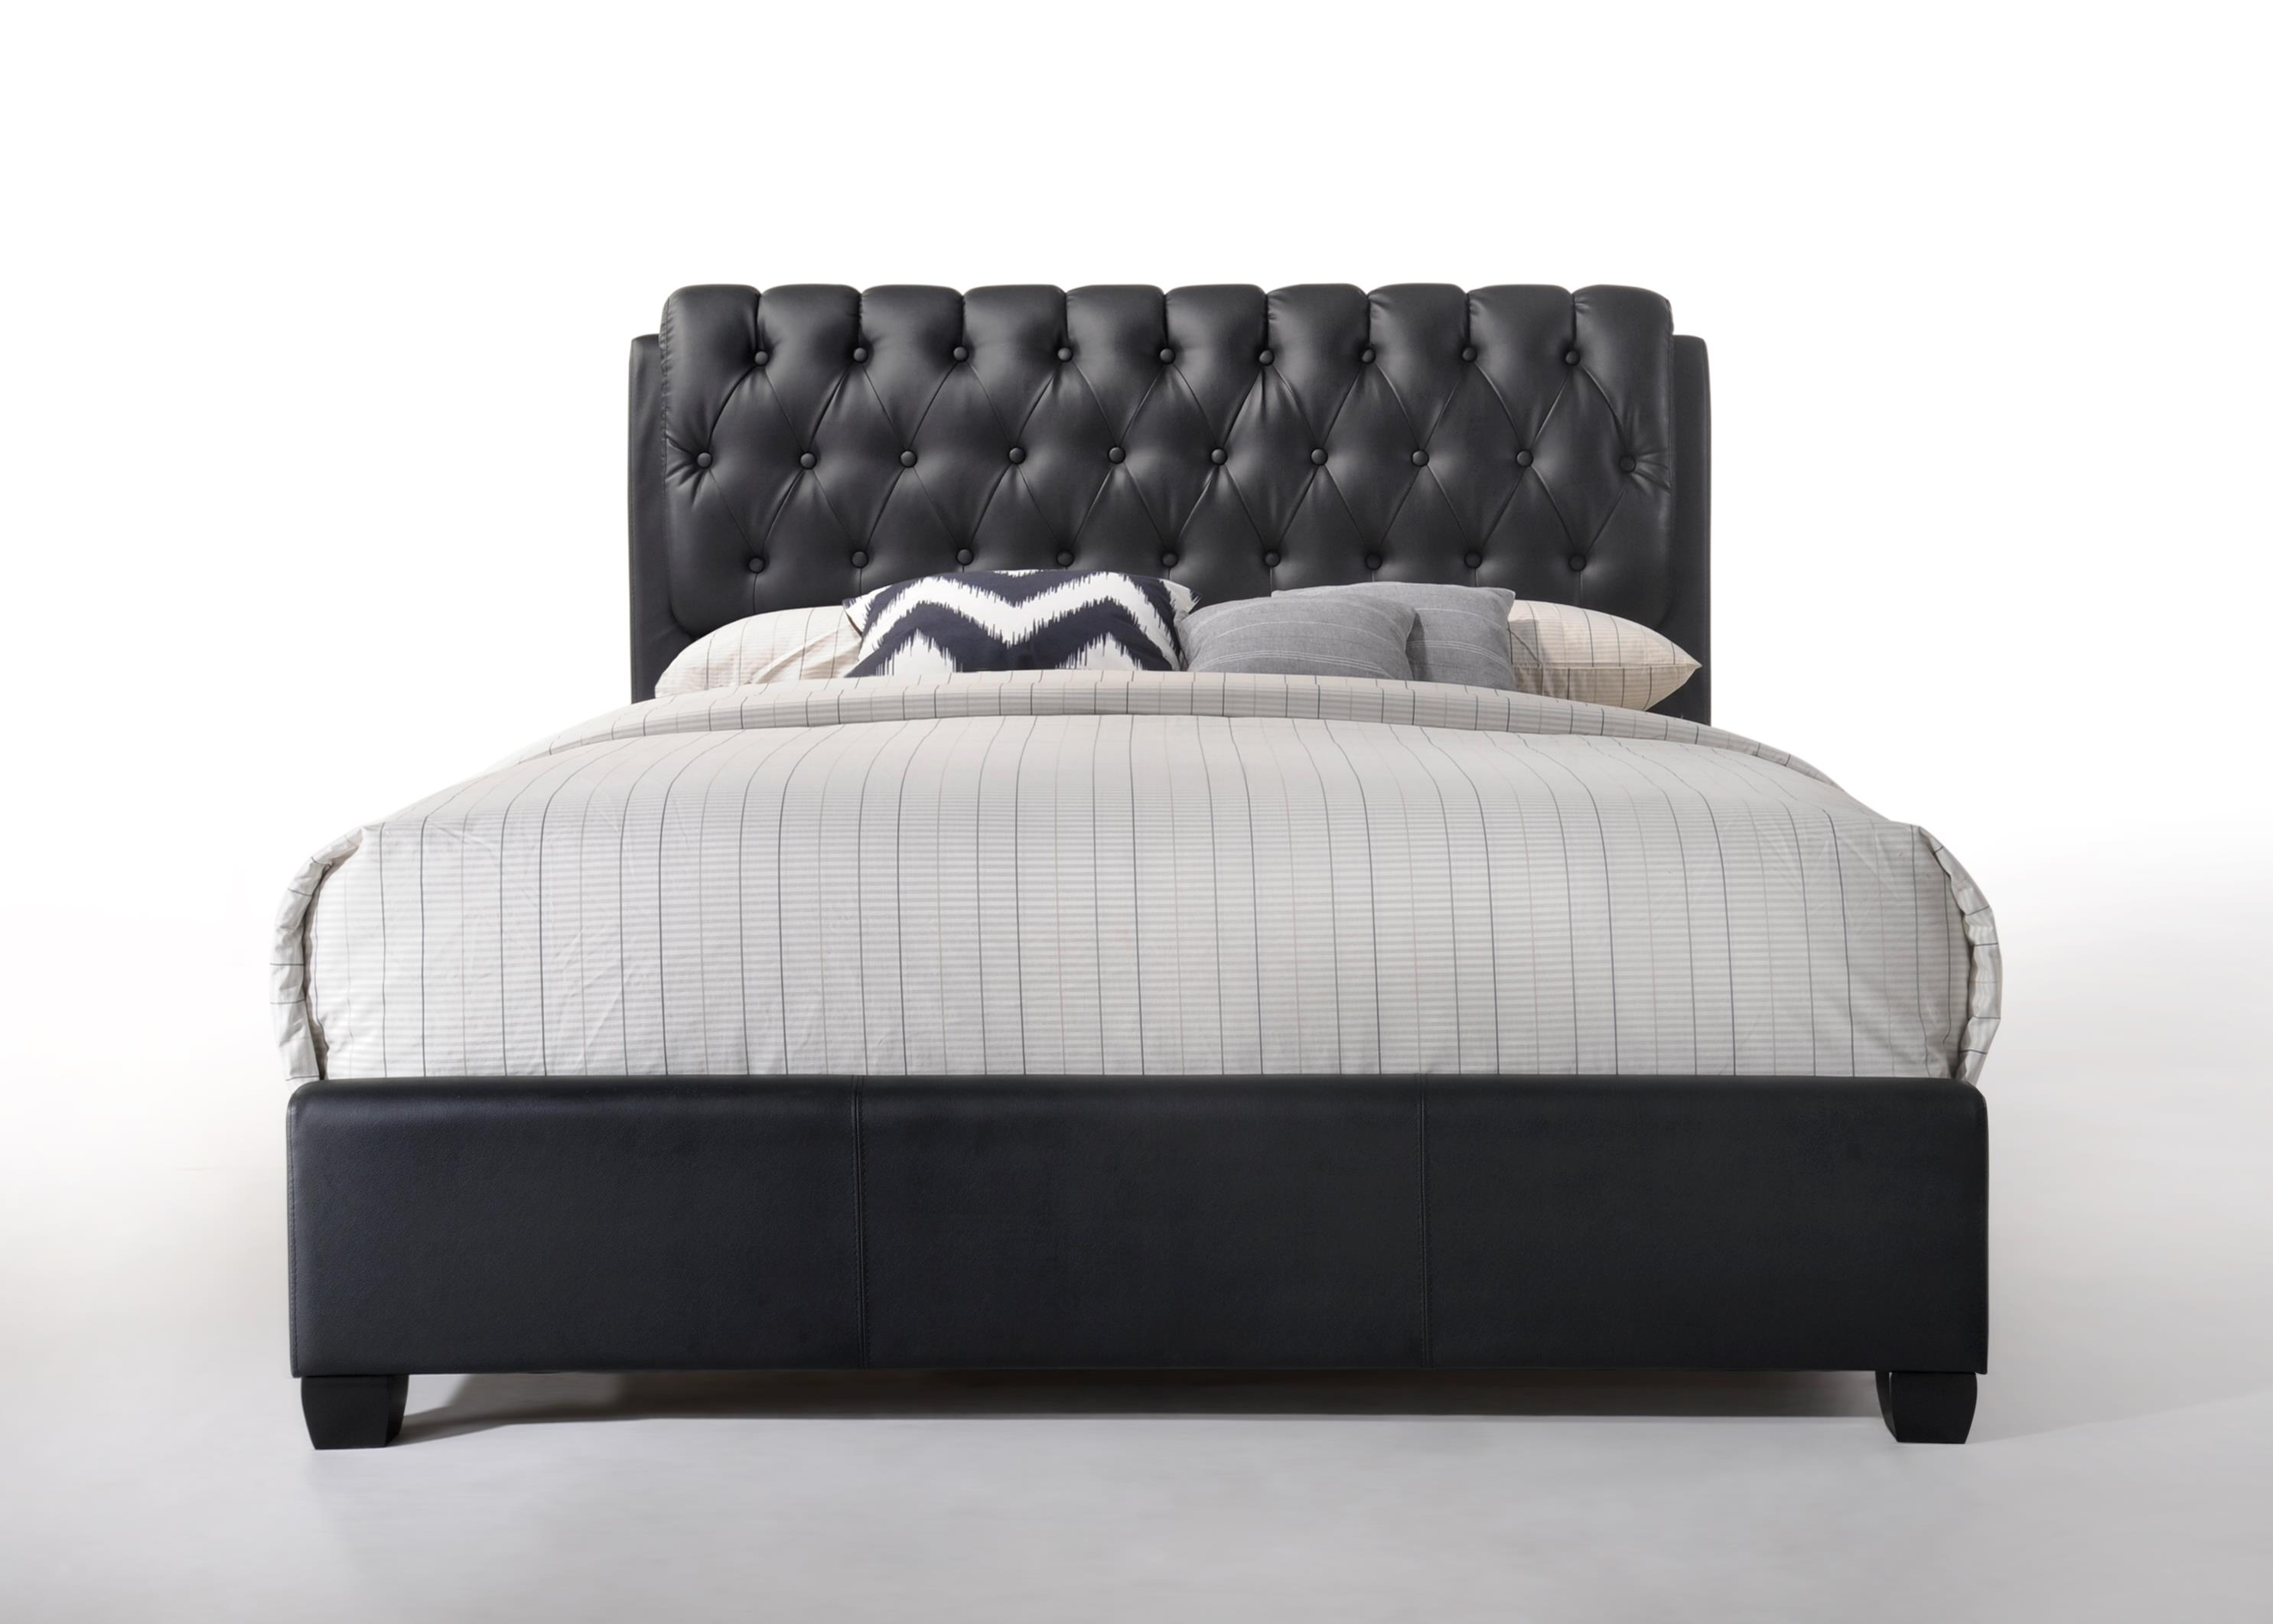 Leather Bed Acme Furniture Ireland Queen Faux Leather Bed With Tufted Headboard Black